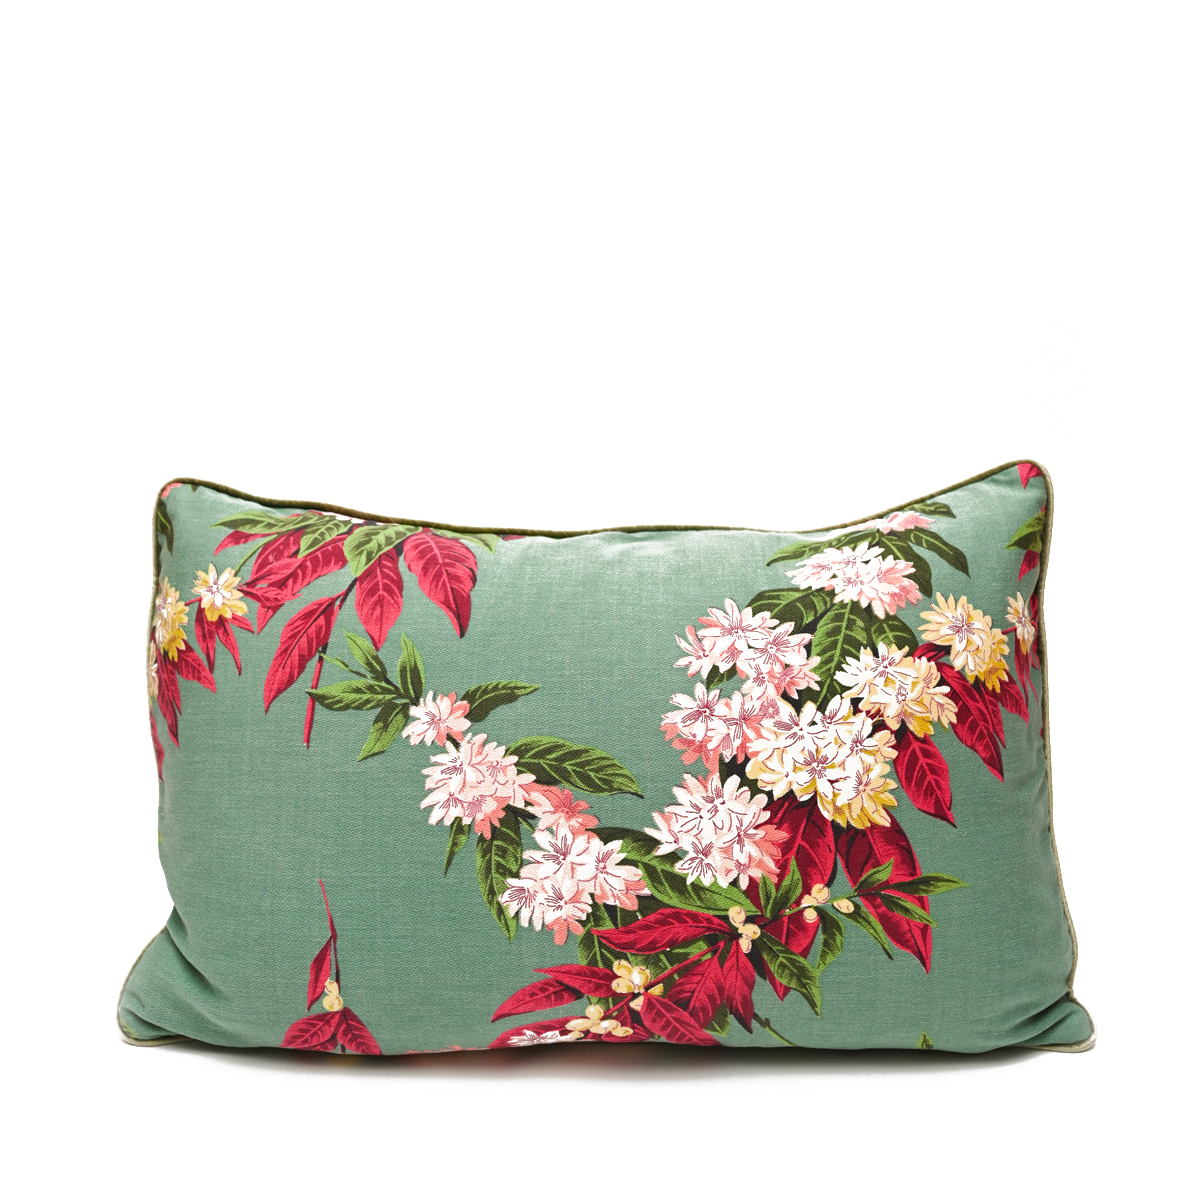 Bed Pillow Individual – Tropical Motif on Teal